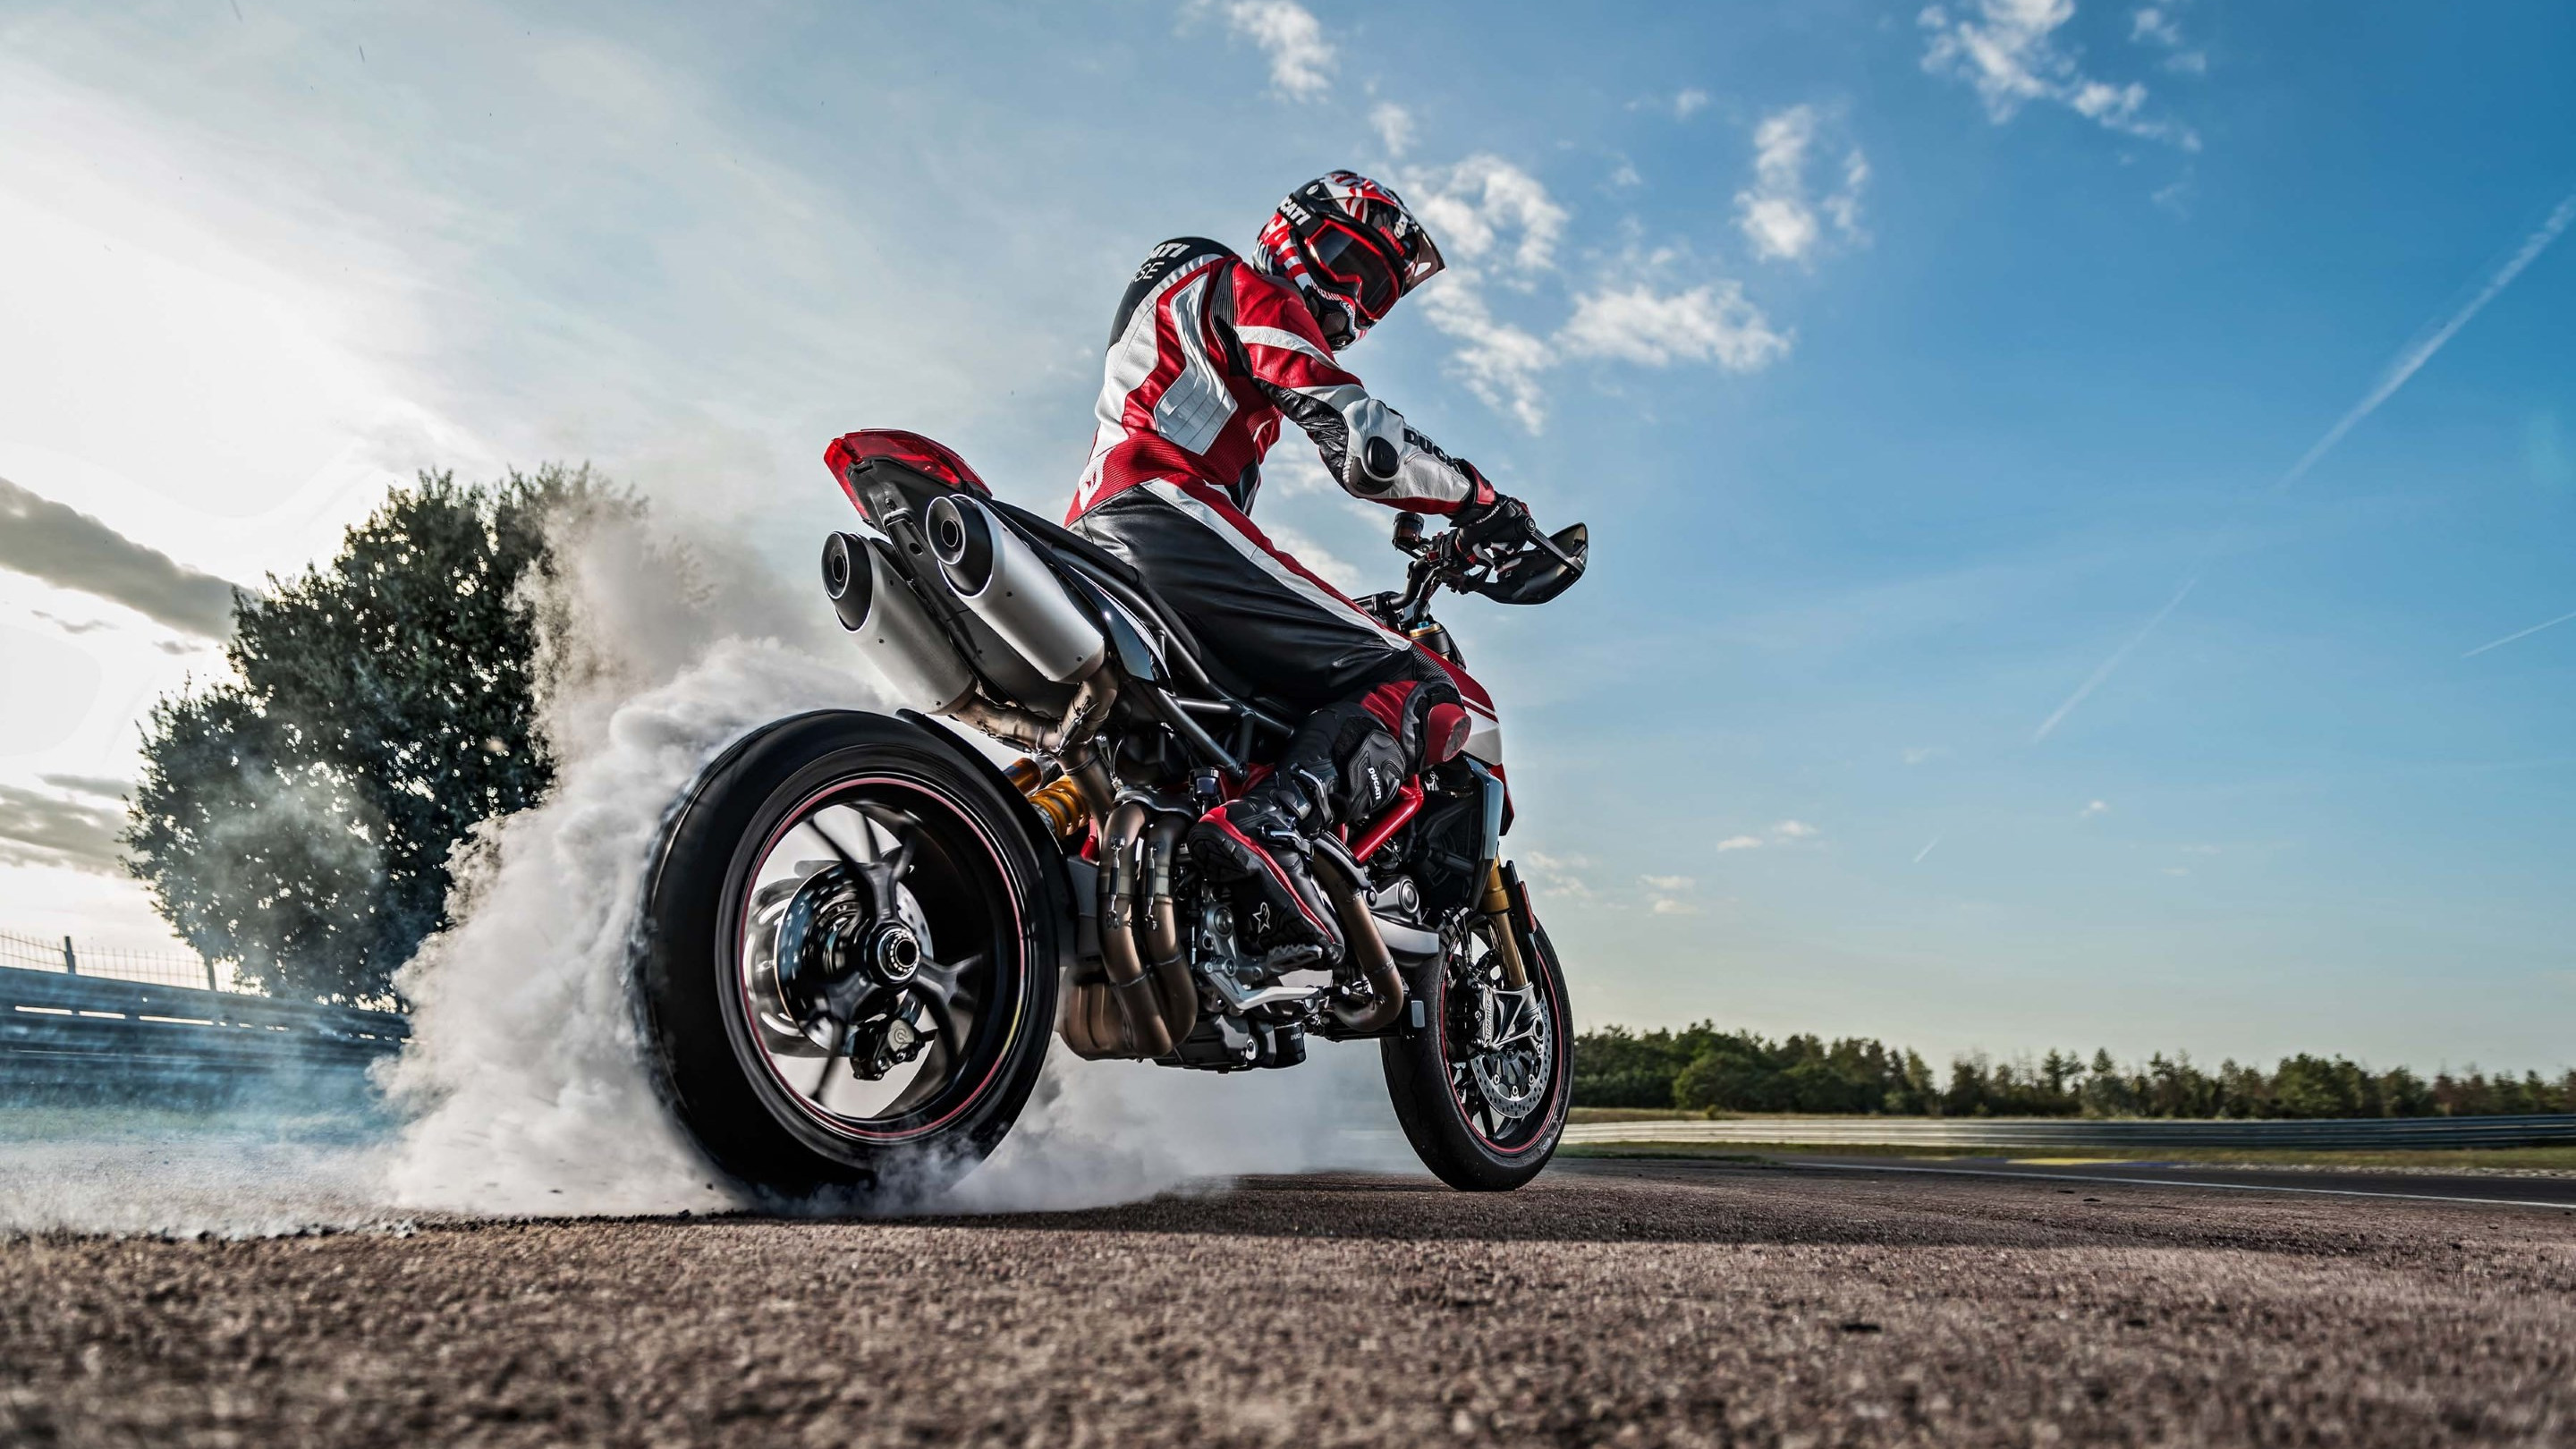 Ducati Hypermotard 950 wallpaper 2880x1620